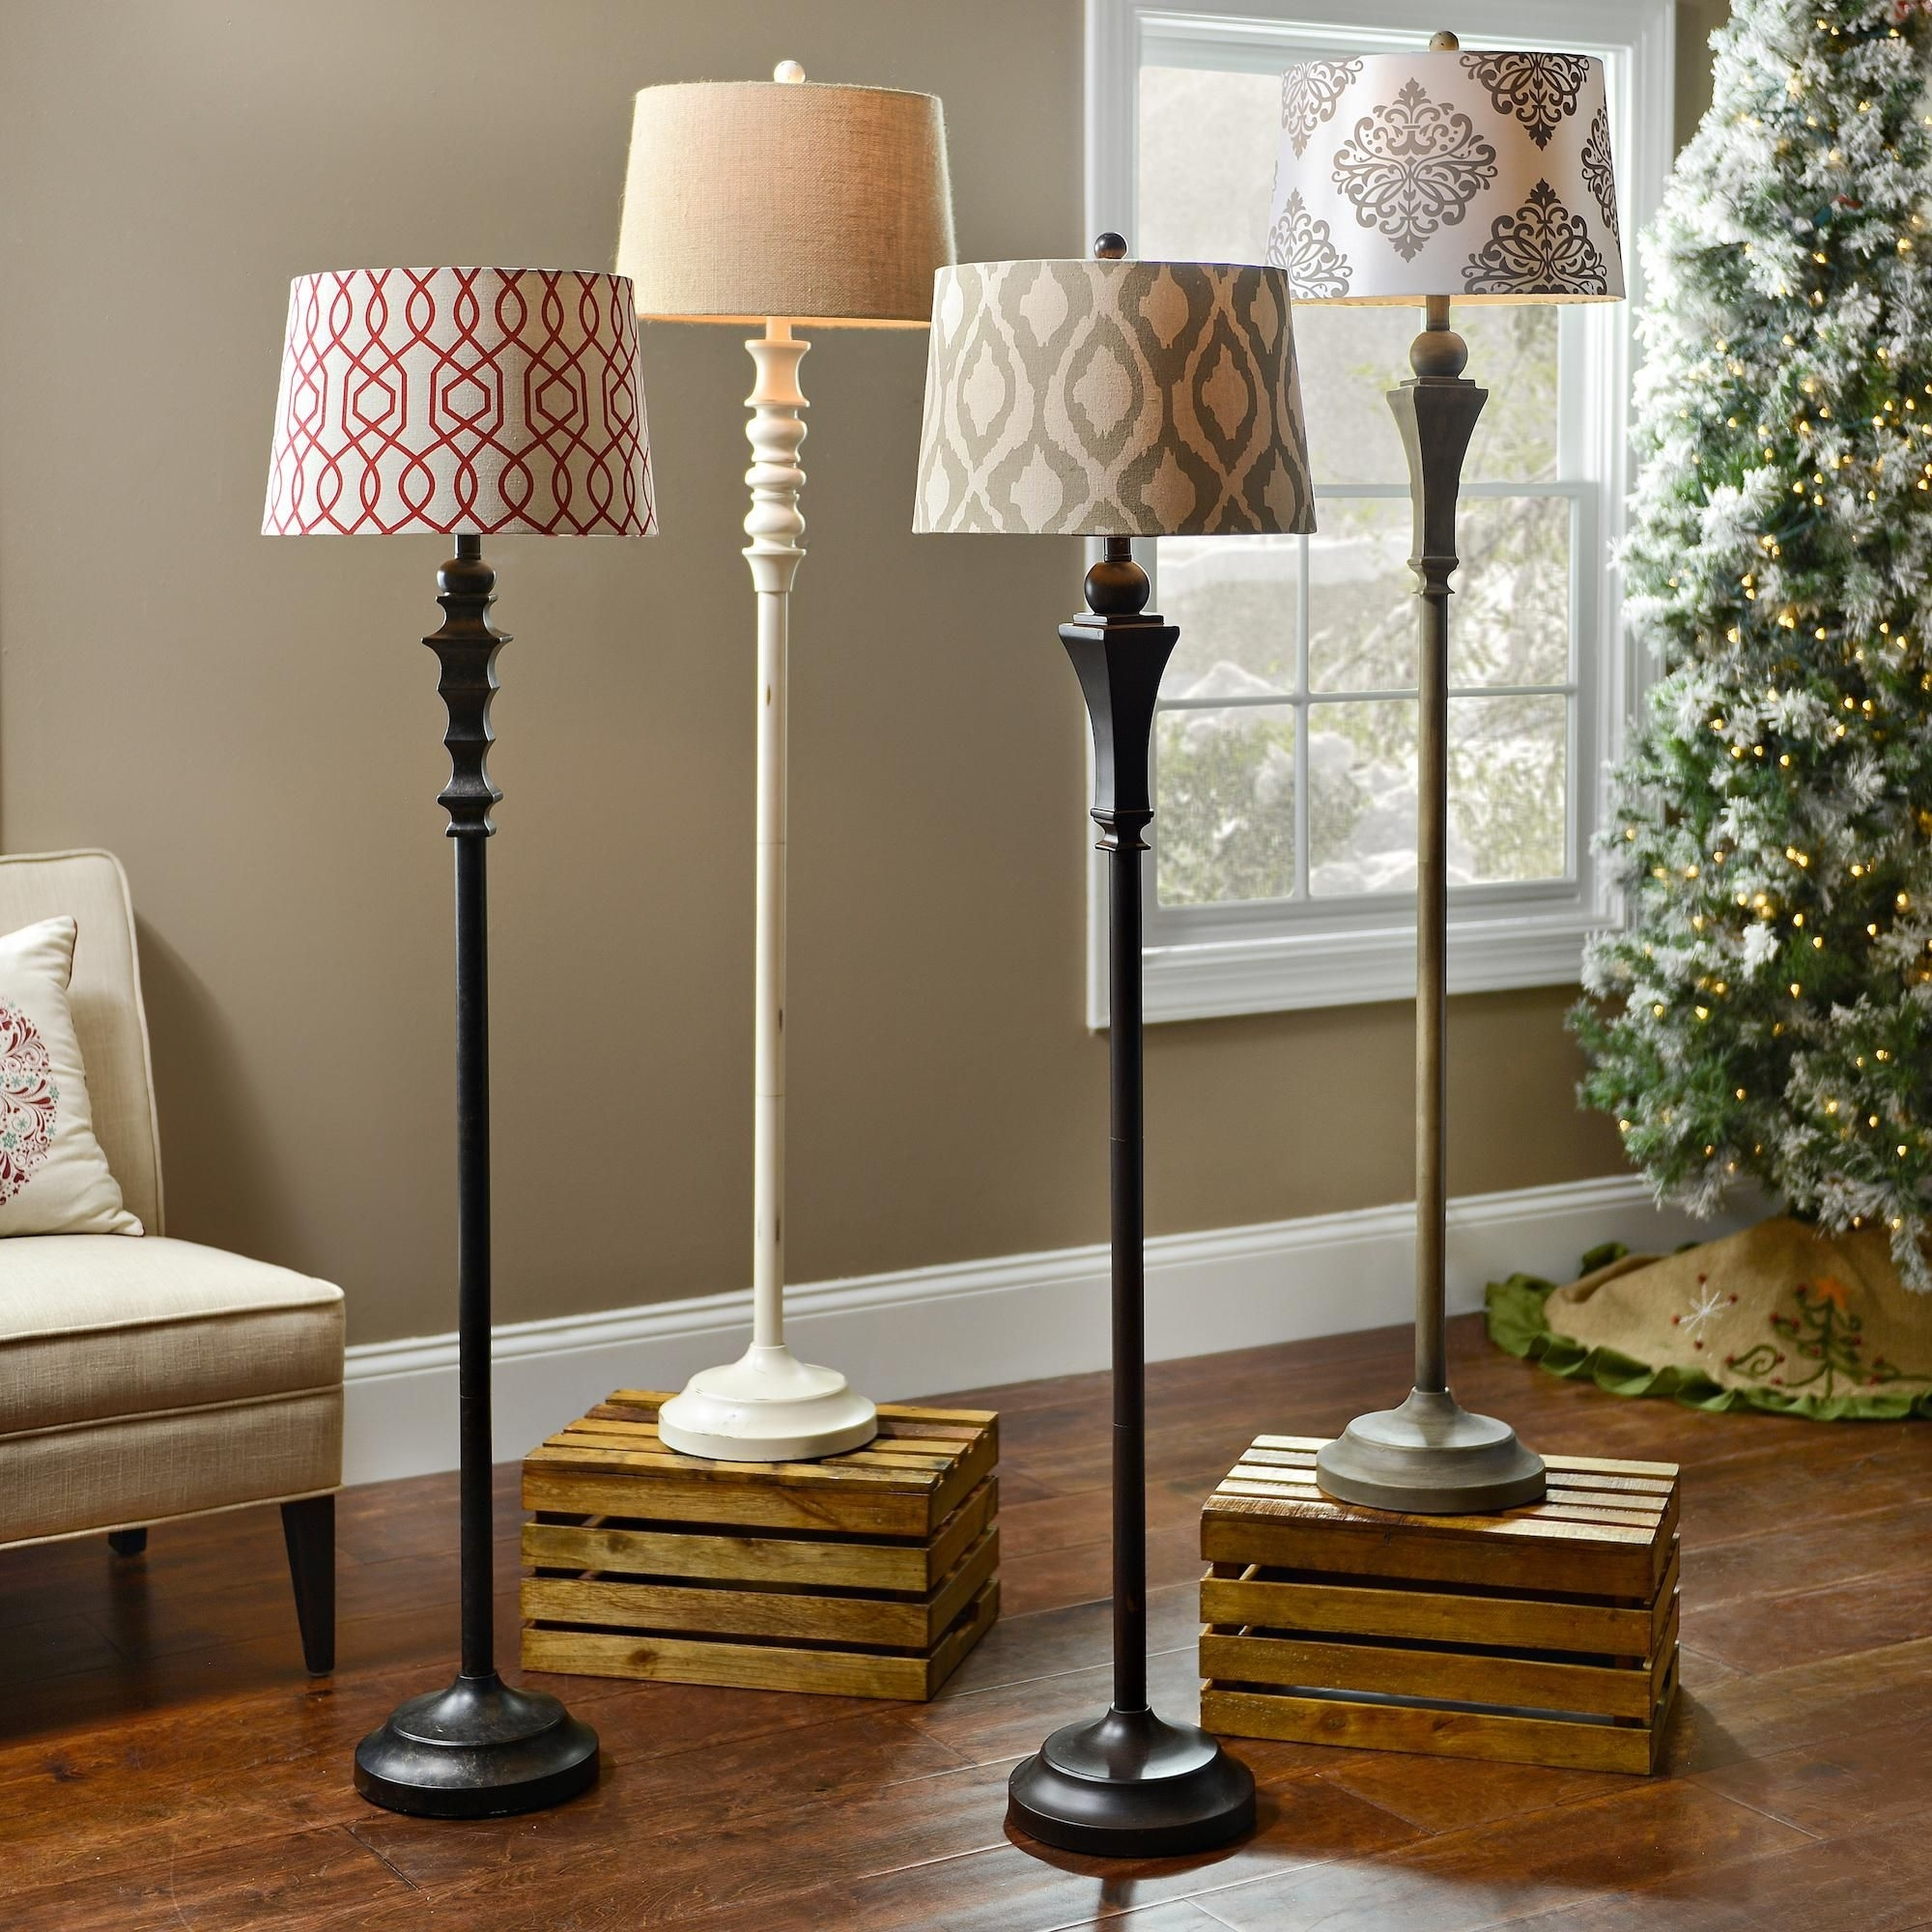 Add Light To A Dim Corner With A Stylish Floor Lamp! | Love Your Regarding Modern Living Room Table Lamps (#1 of 15)